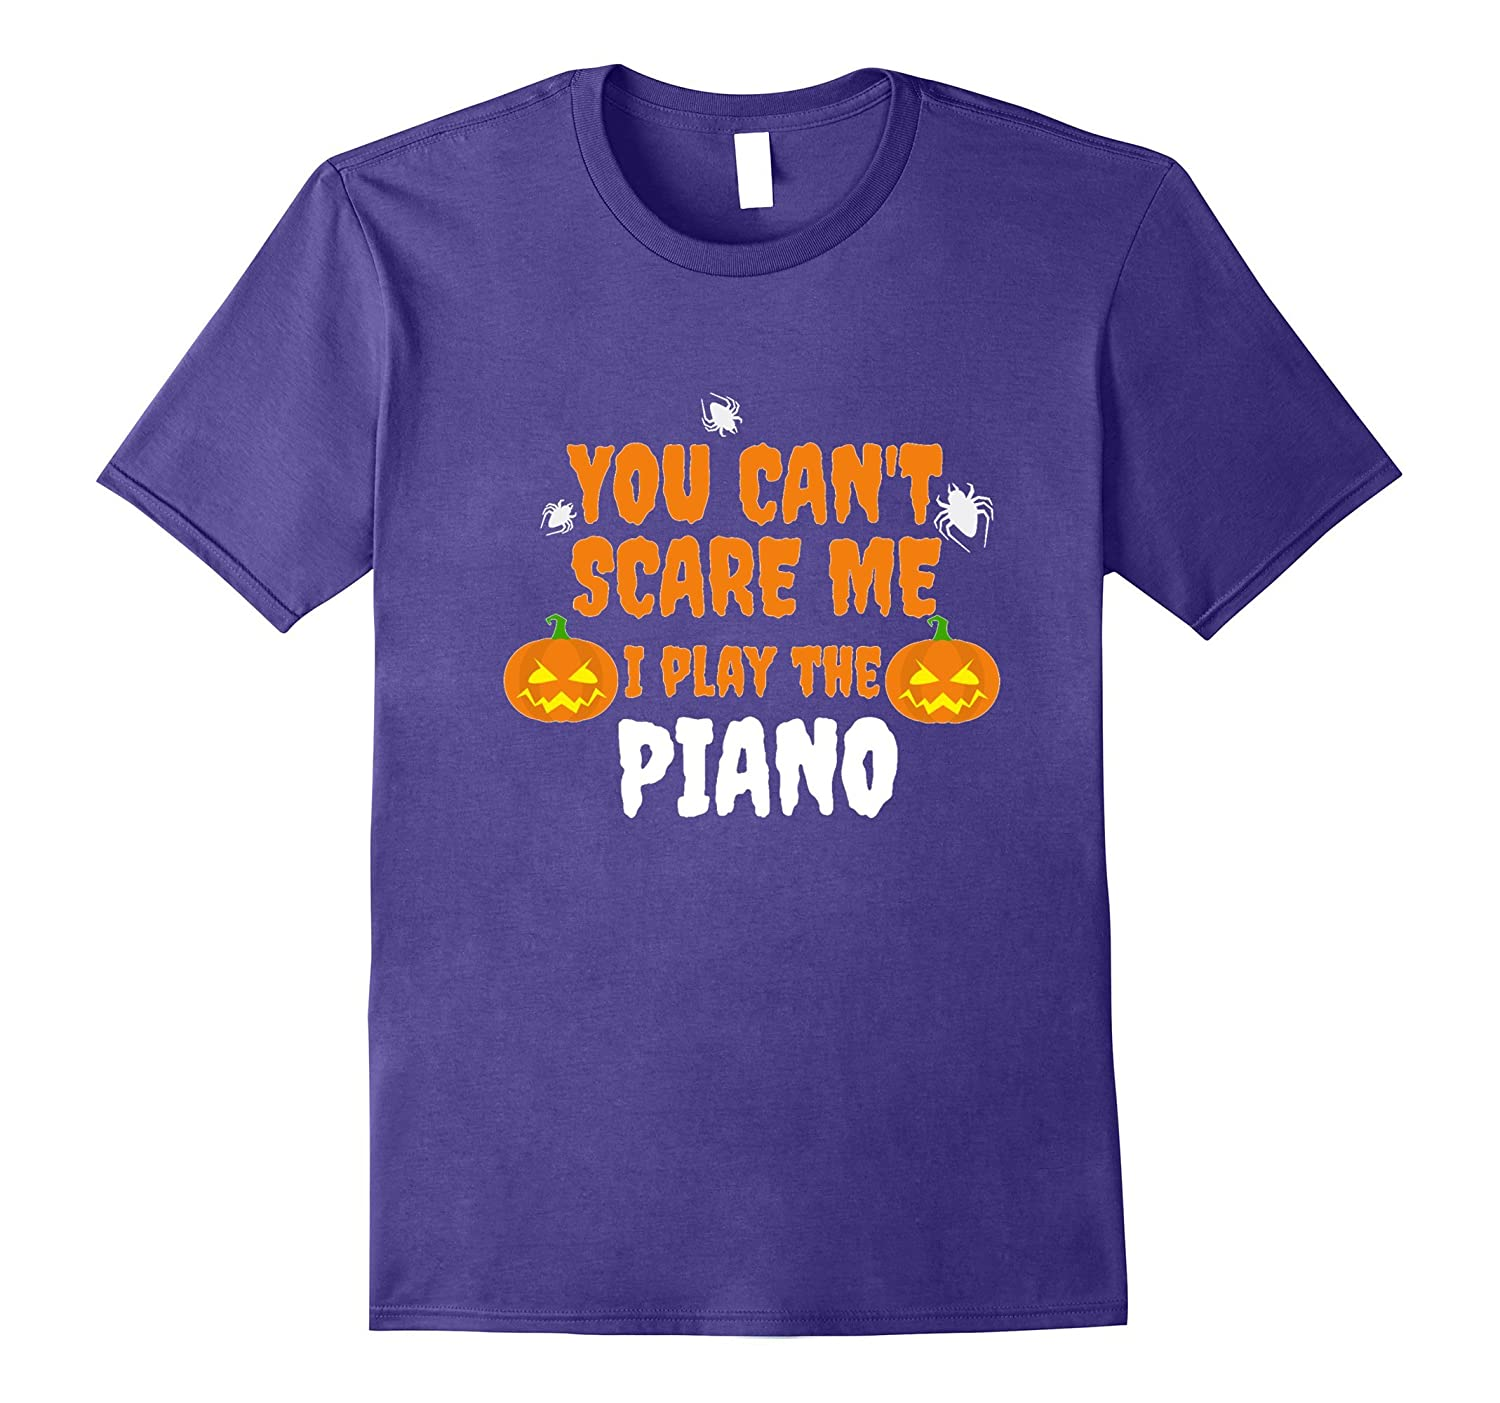 Can't Scare Me I Play the Piano Funny T-shirt Halloween-ANZ